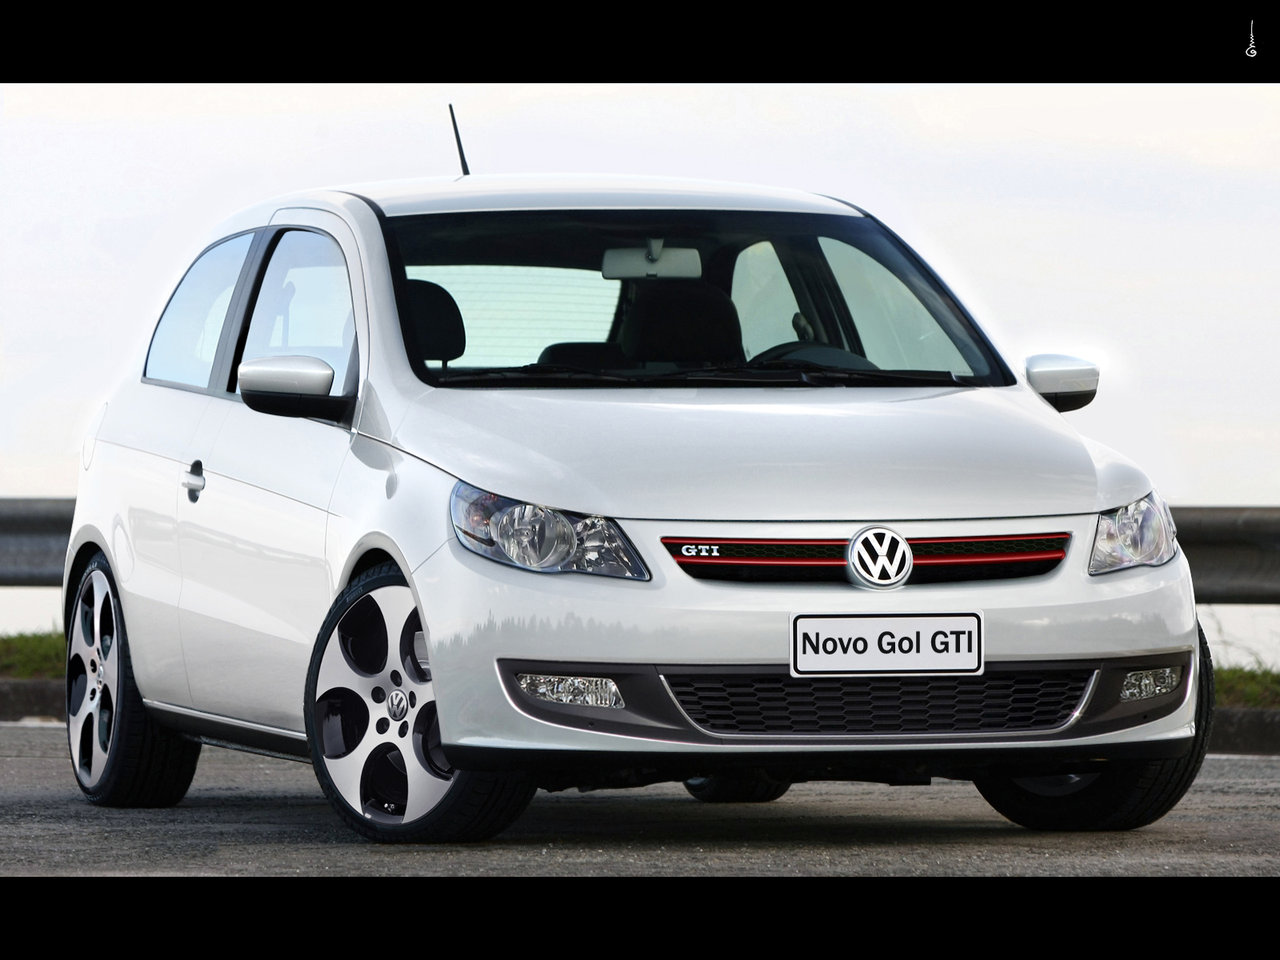 volkswagen gol photos news reviews specs car listings. Black Bedroom Furniture Sets. Home Design Ideas